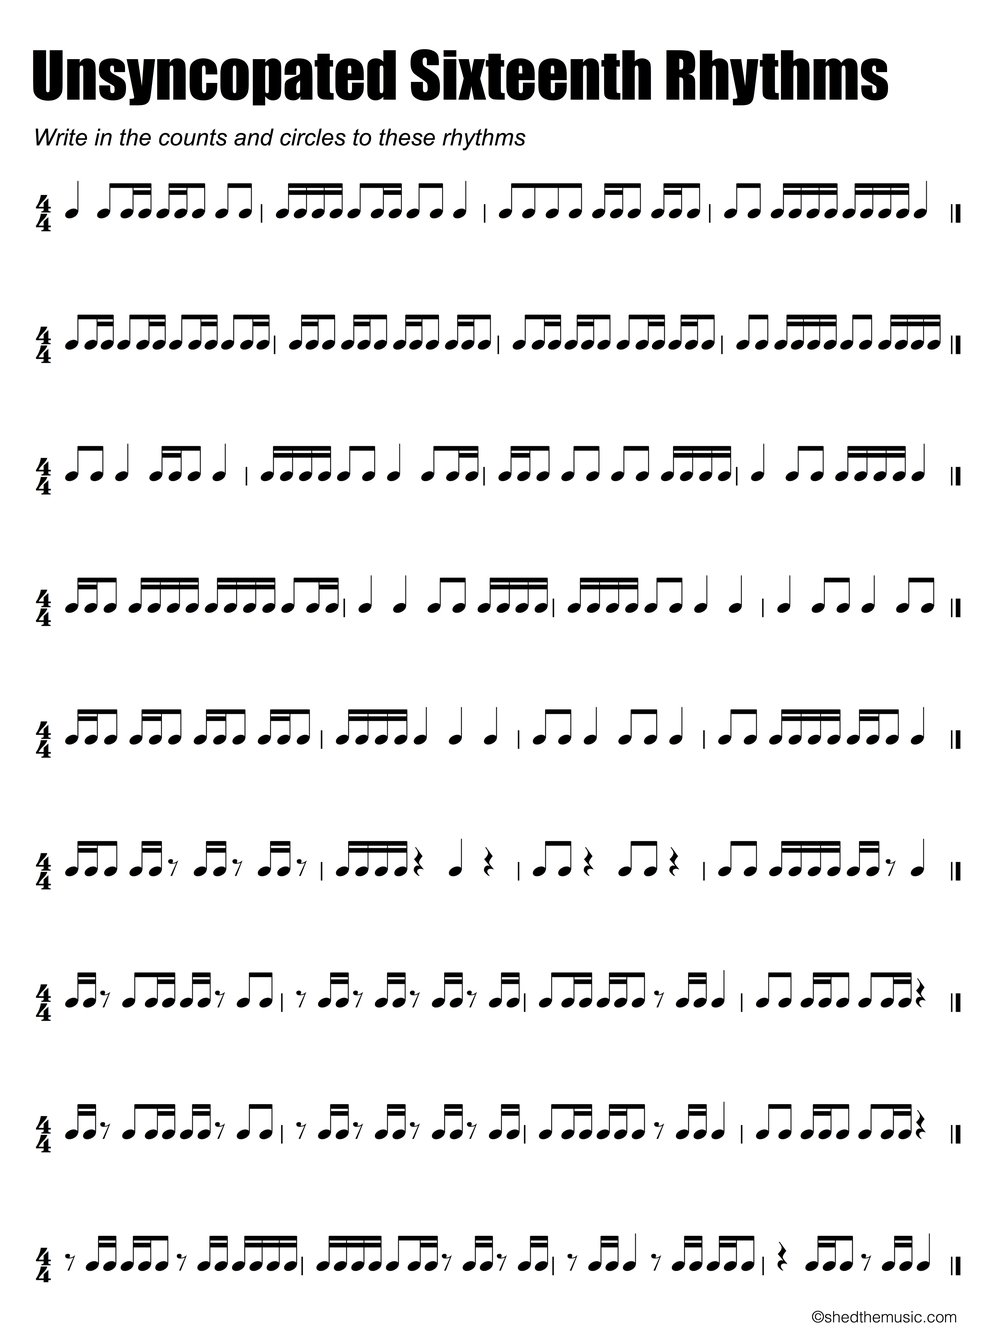 Unsyncopated 16th Rhythm Practice.jpg